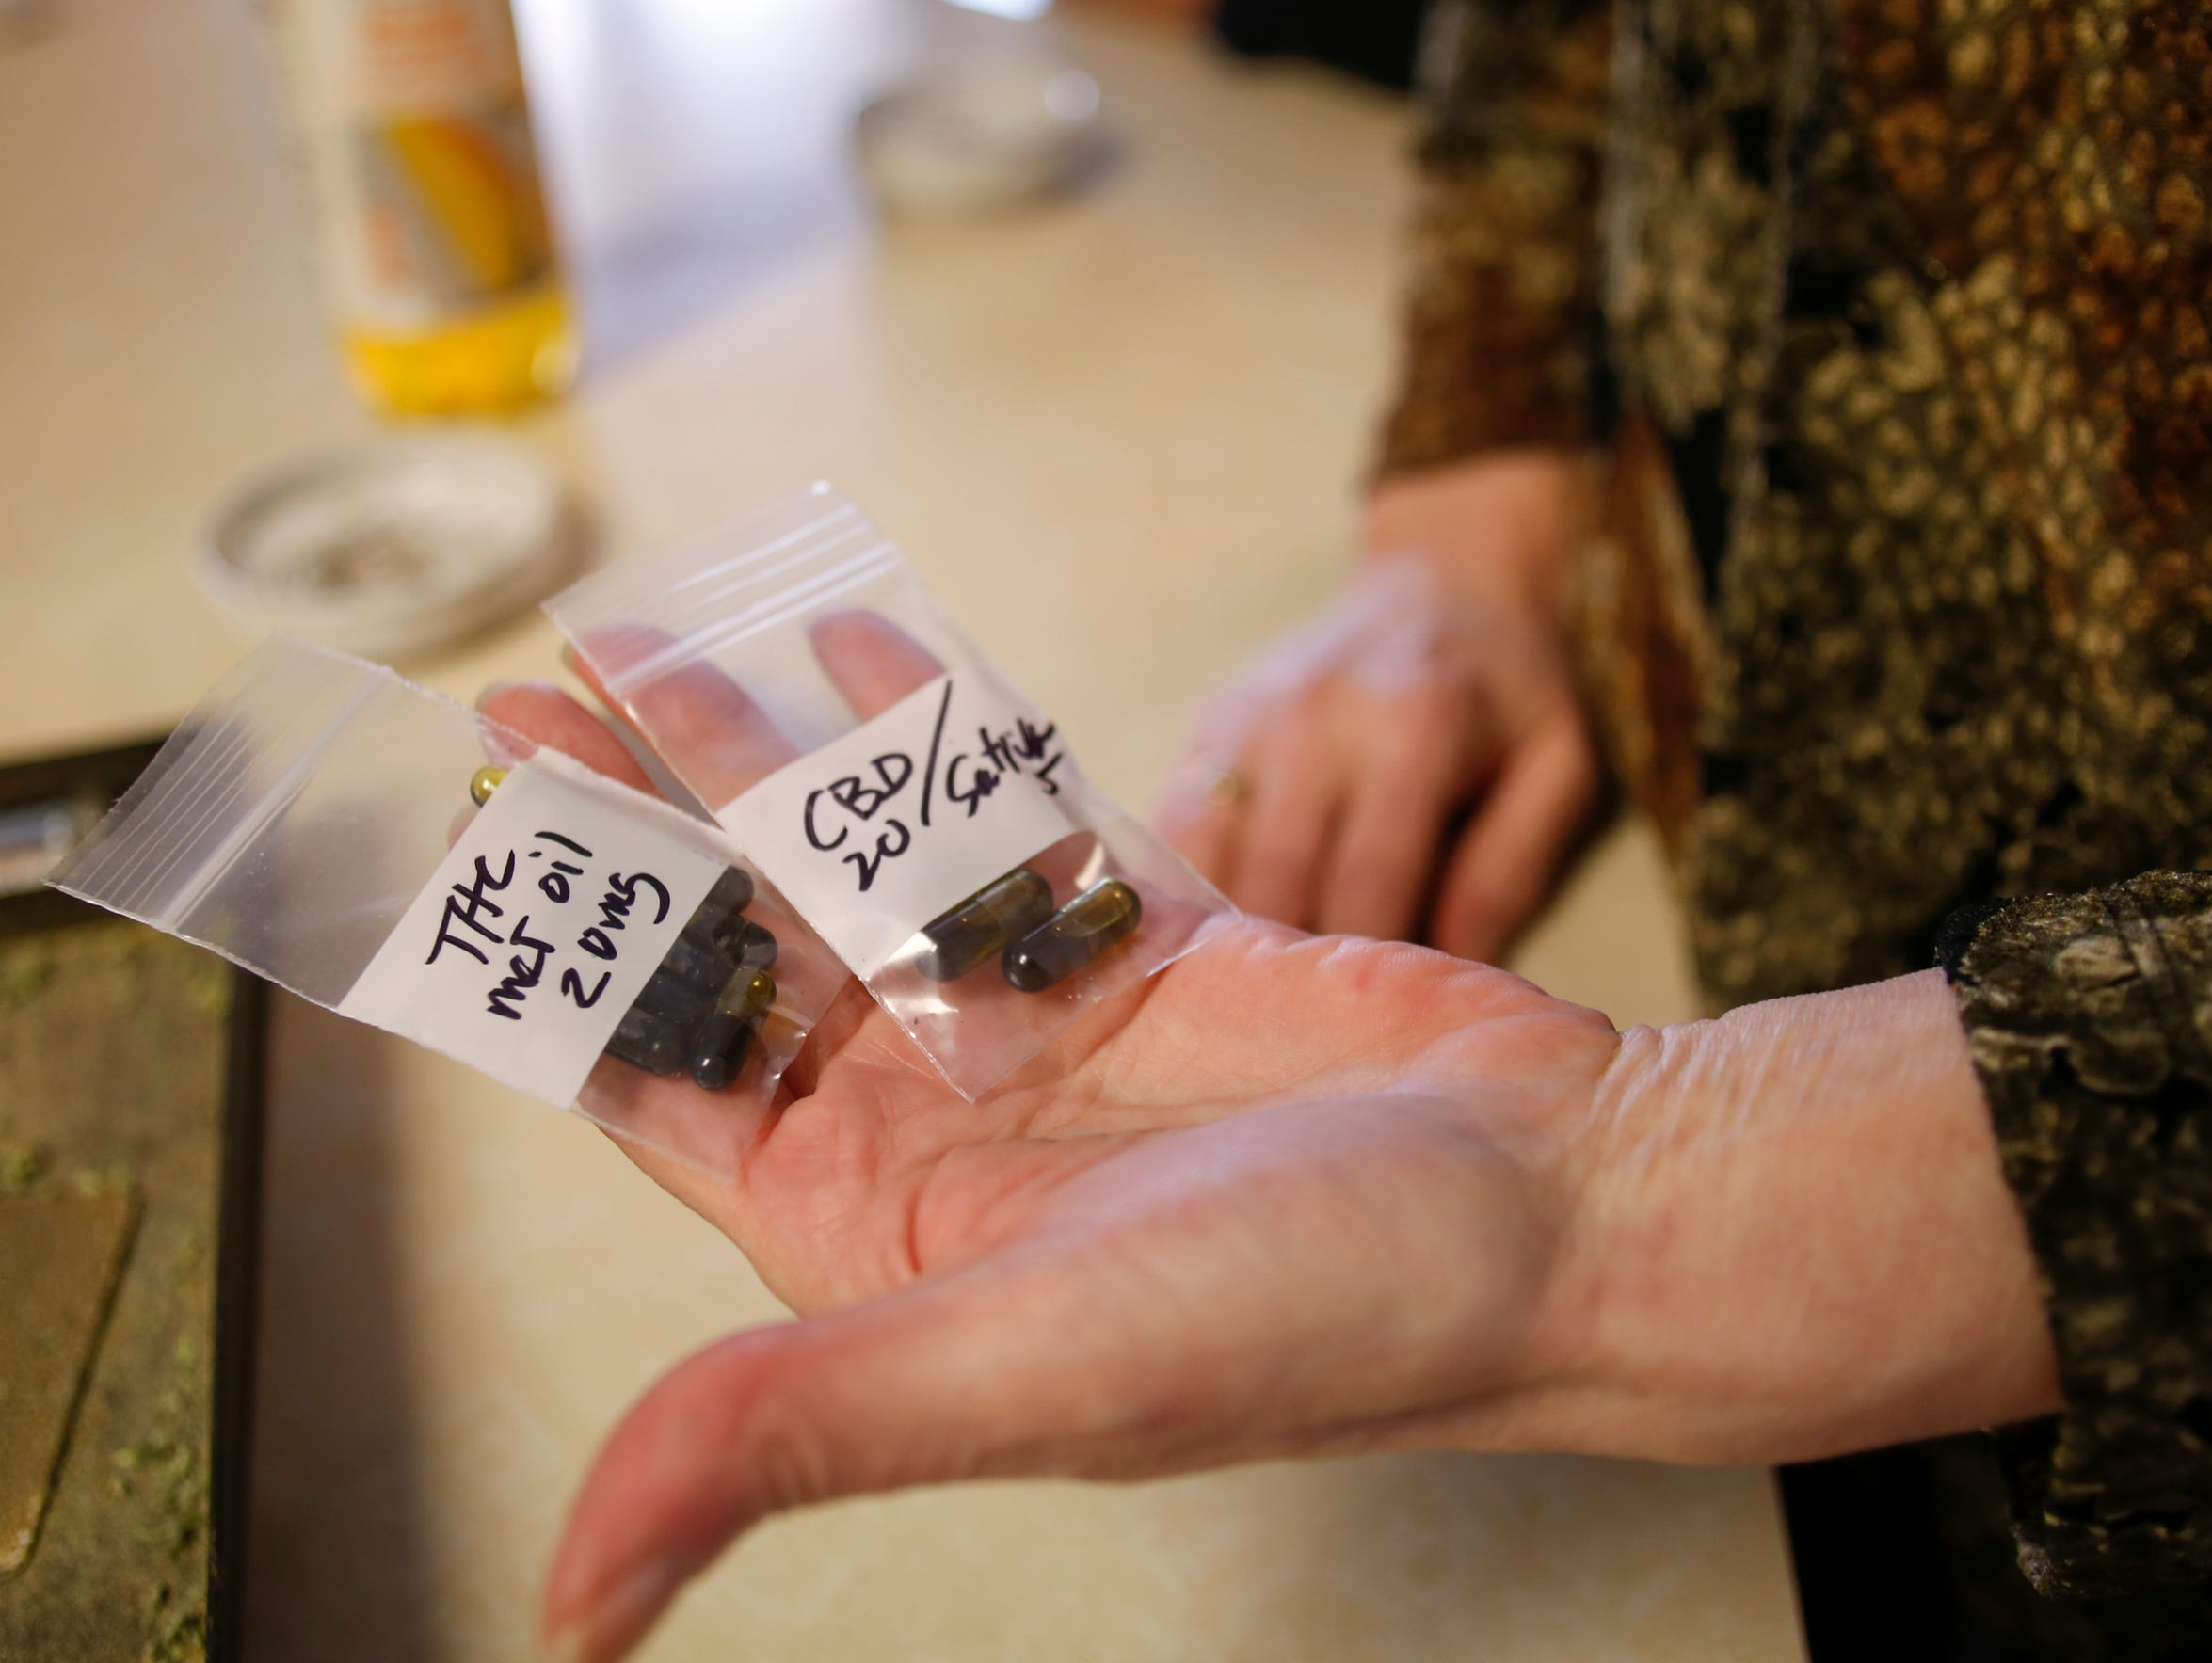 Dena Oyler, 58, of Grand Rapids, shows packages of medical marijuana. State law allows her to care for five patients, growing up to 12 plants for each.